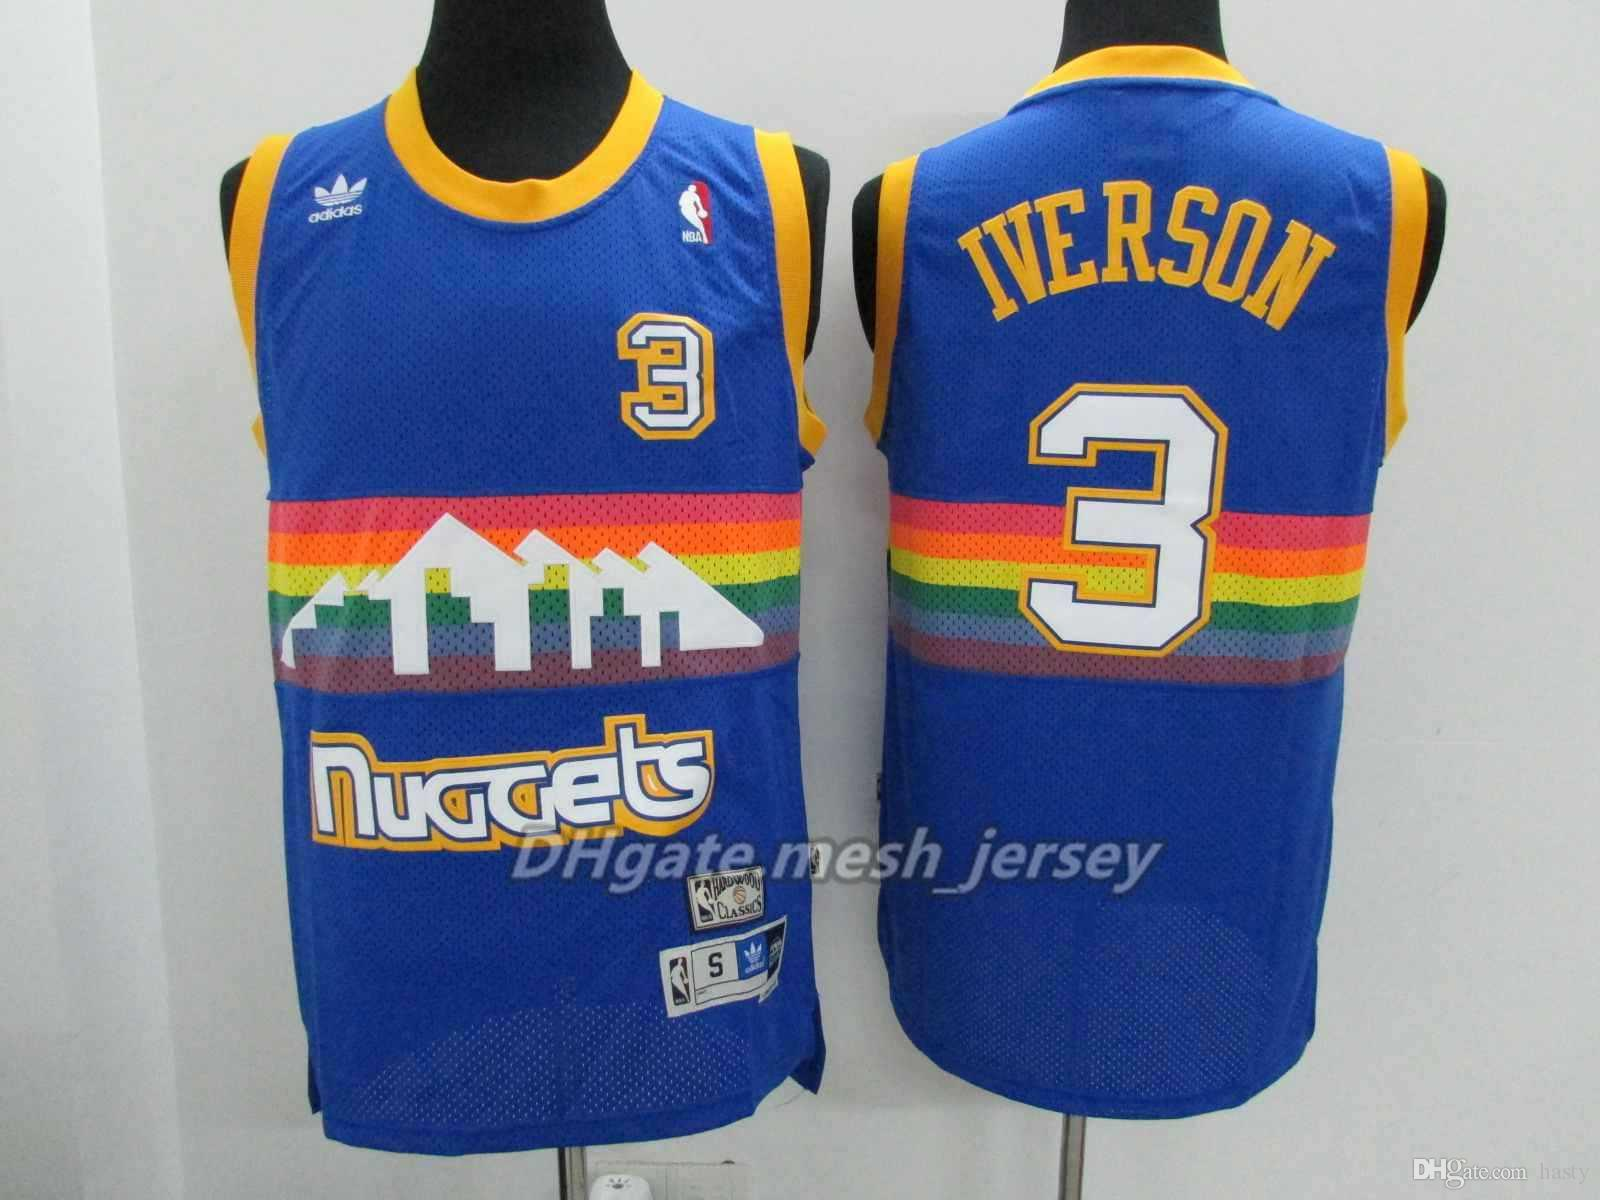 official photos da119 75fe3 2018 Retro Men Denver Basketball Nuggets Jersey 55 Dikembe Mutombo 3 Allen  Iverson Stitching Jerseys Rainbow S Xxl From Hasty, $18.1 | Dhgate.Com